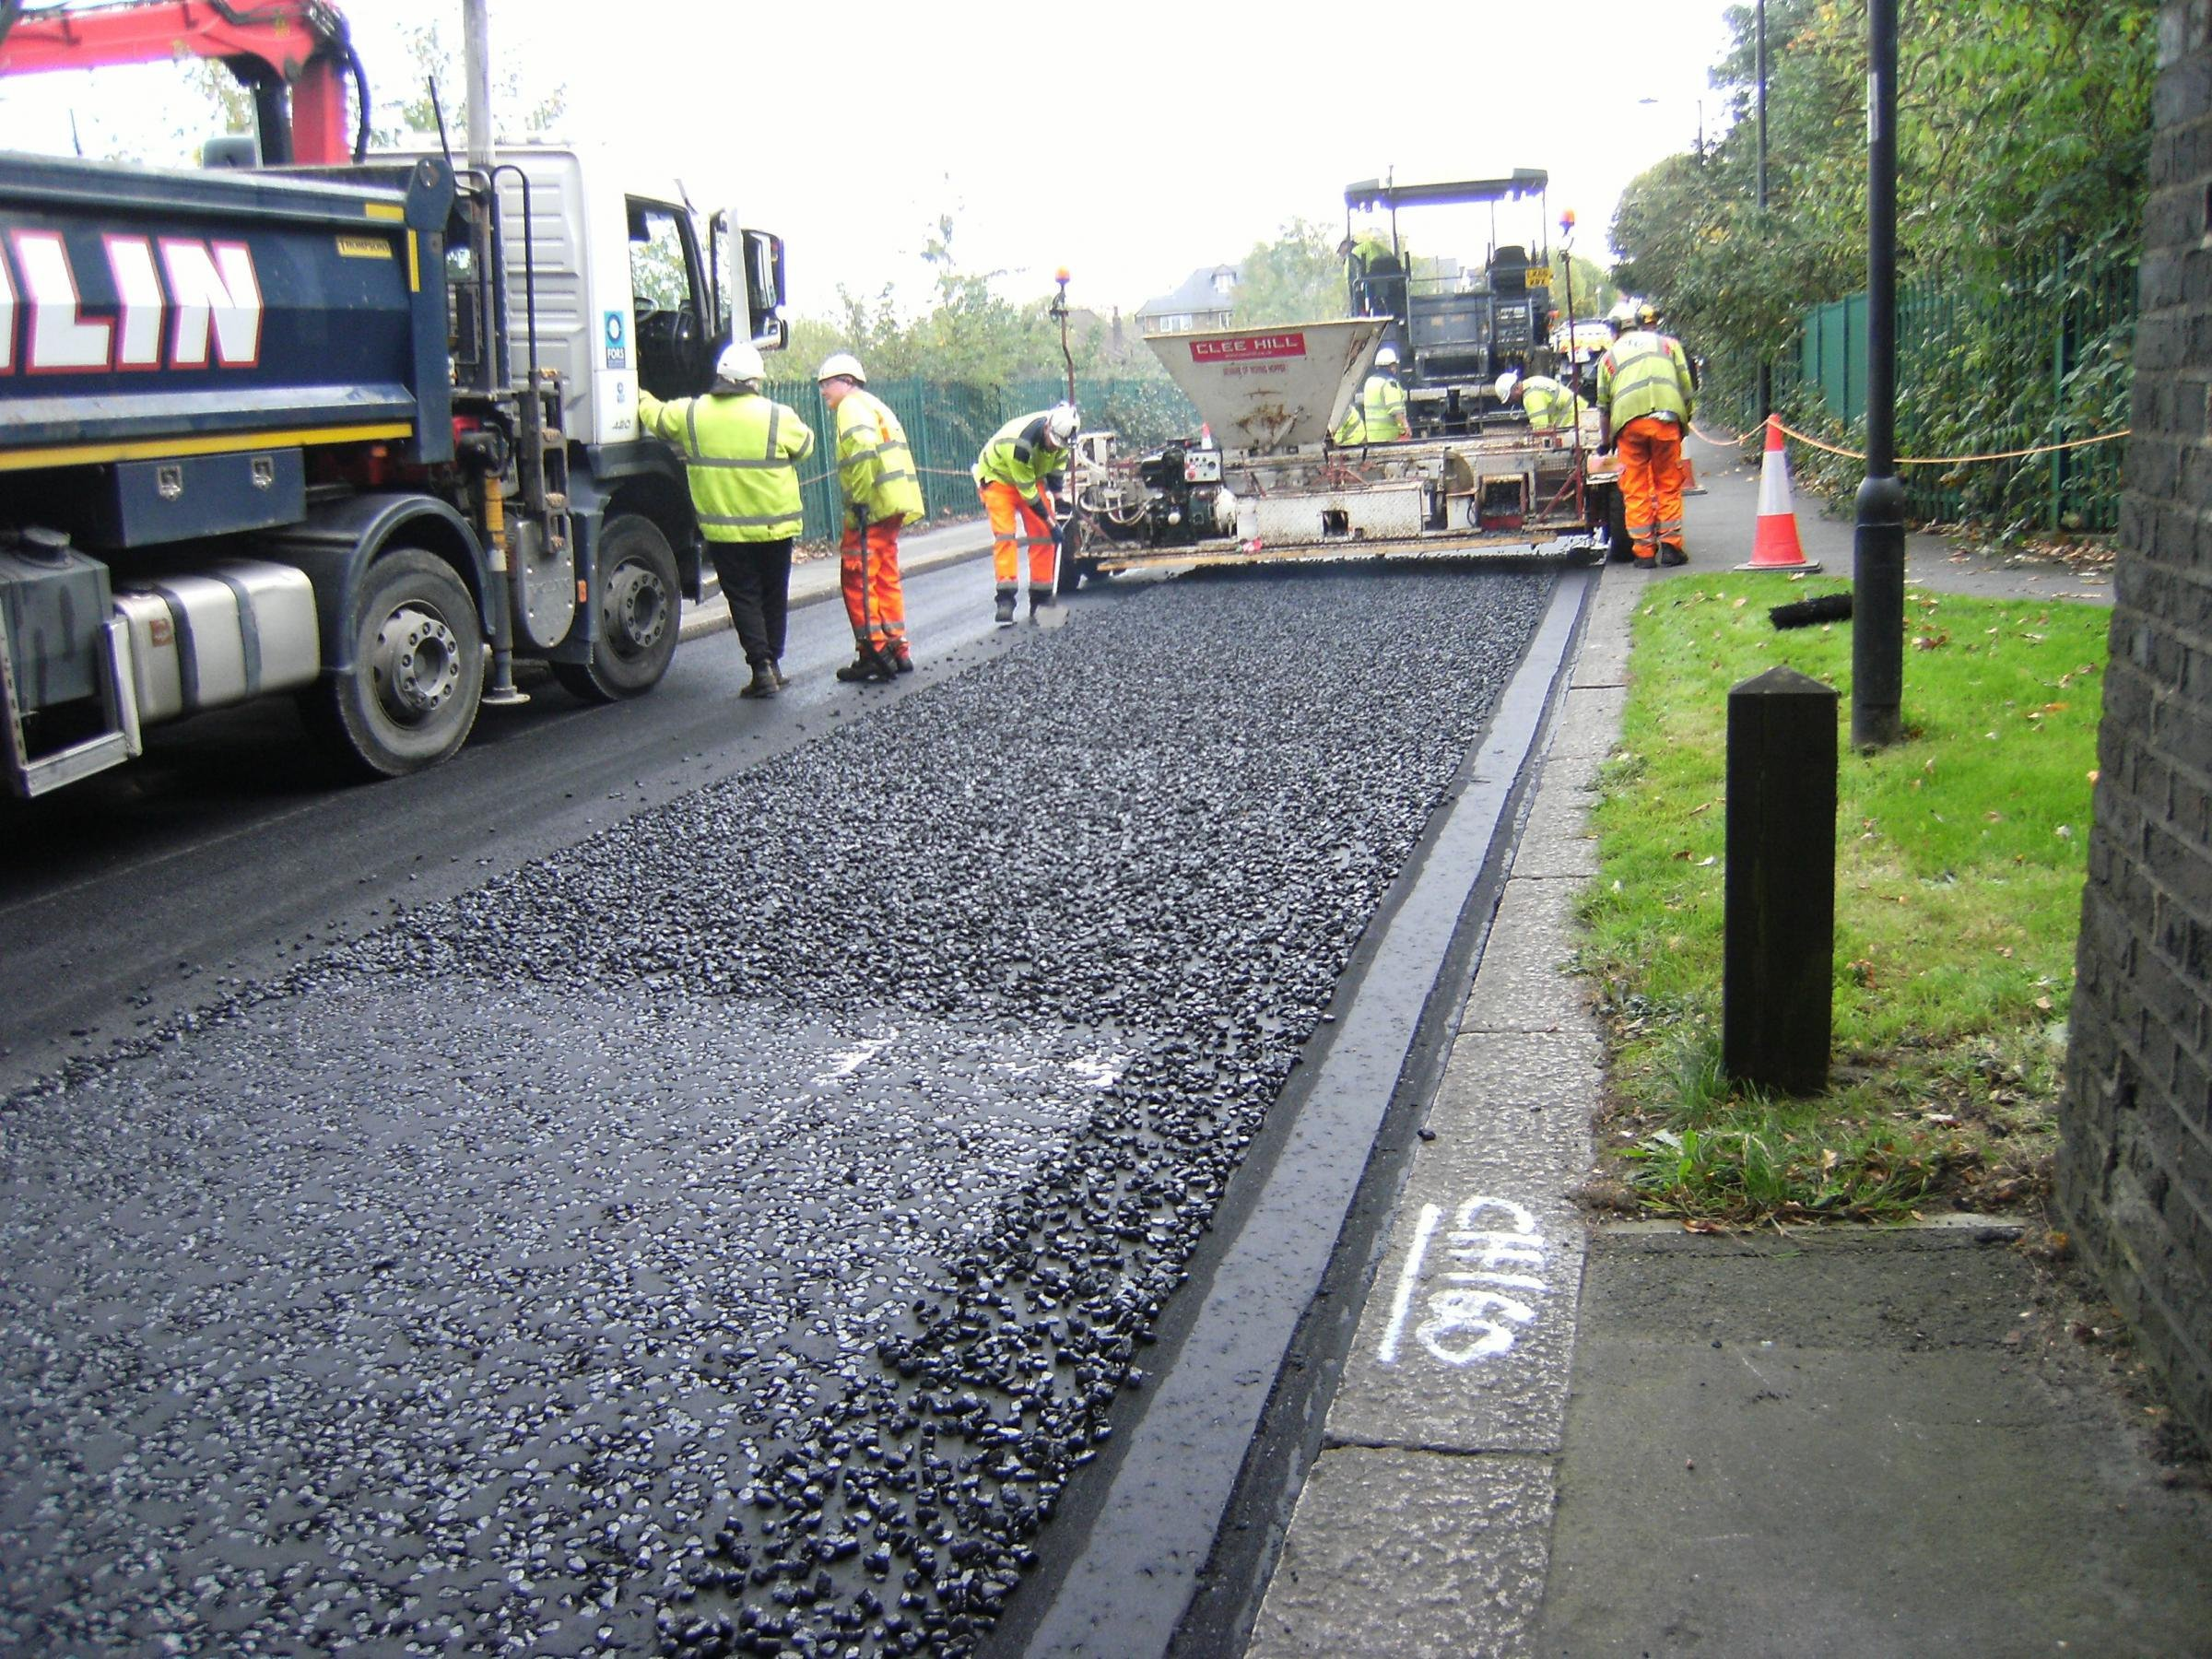 """A council is fighting back against plastic waste - by recycling bottles into ROADS. (Pictured) See National story NNROAD; Enfield Council have already resurfaced one road in a mixture of plastic and asphalt, and are planning on using the pioneering substance on all their streets - because it's tougher than normal. The mix is tougher and more durable than standard tarmac by using waste that would otherwise end up in landfill - and could reduce the number of annoying potholes. Transport for London have given funding to the council plans, which looks to fight the environmental impact of plastic. Monitoring of the road has shown the asphalt mix is performing well and is proving to be a long-term, durable solution to road resurfacing. Enfield Council?s Cabinet Member for Environment, Cllr Daniel Anderson, said: ?We all know that plastics can have a devastating impact on the environment, particularly when the product reaches our seas and oceans. """"We all have a responsibility to step up our efforts to help the environment by recycling more, upcycling and responsibly sourcing materials. ?Enfield Council is delighted with this road trial and hope we can use more of the product across the borough to help divert plastics from landfill and reduce the carbon footprint for road construction.?"""